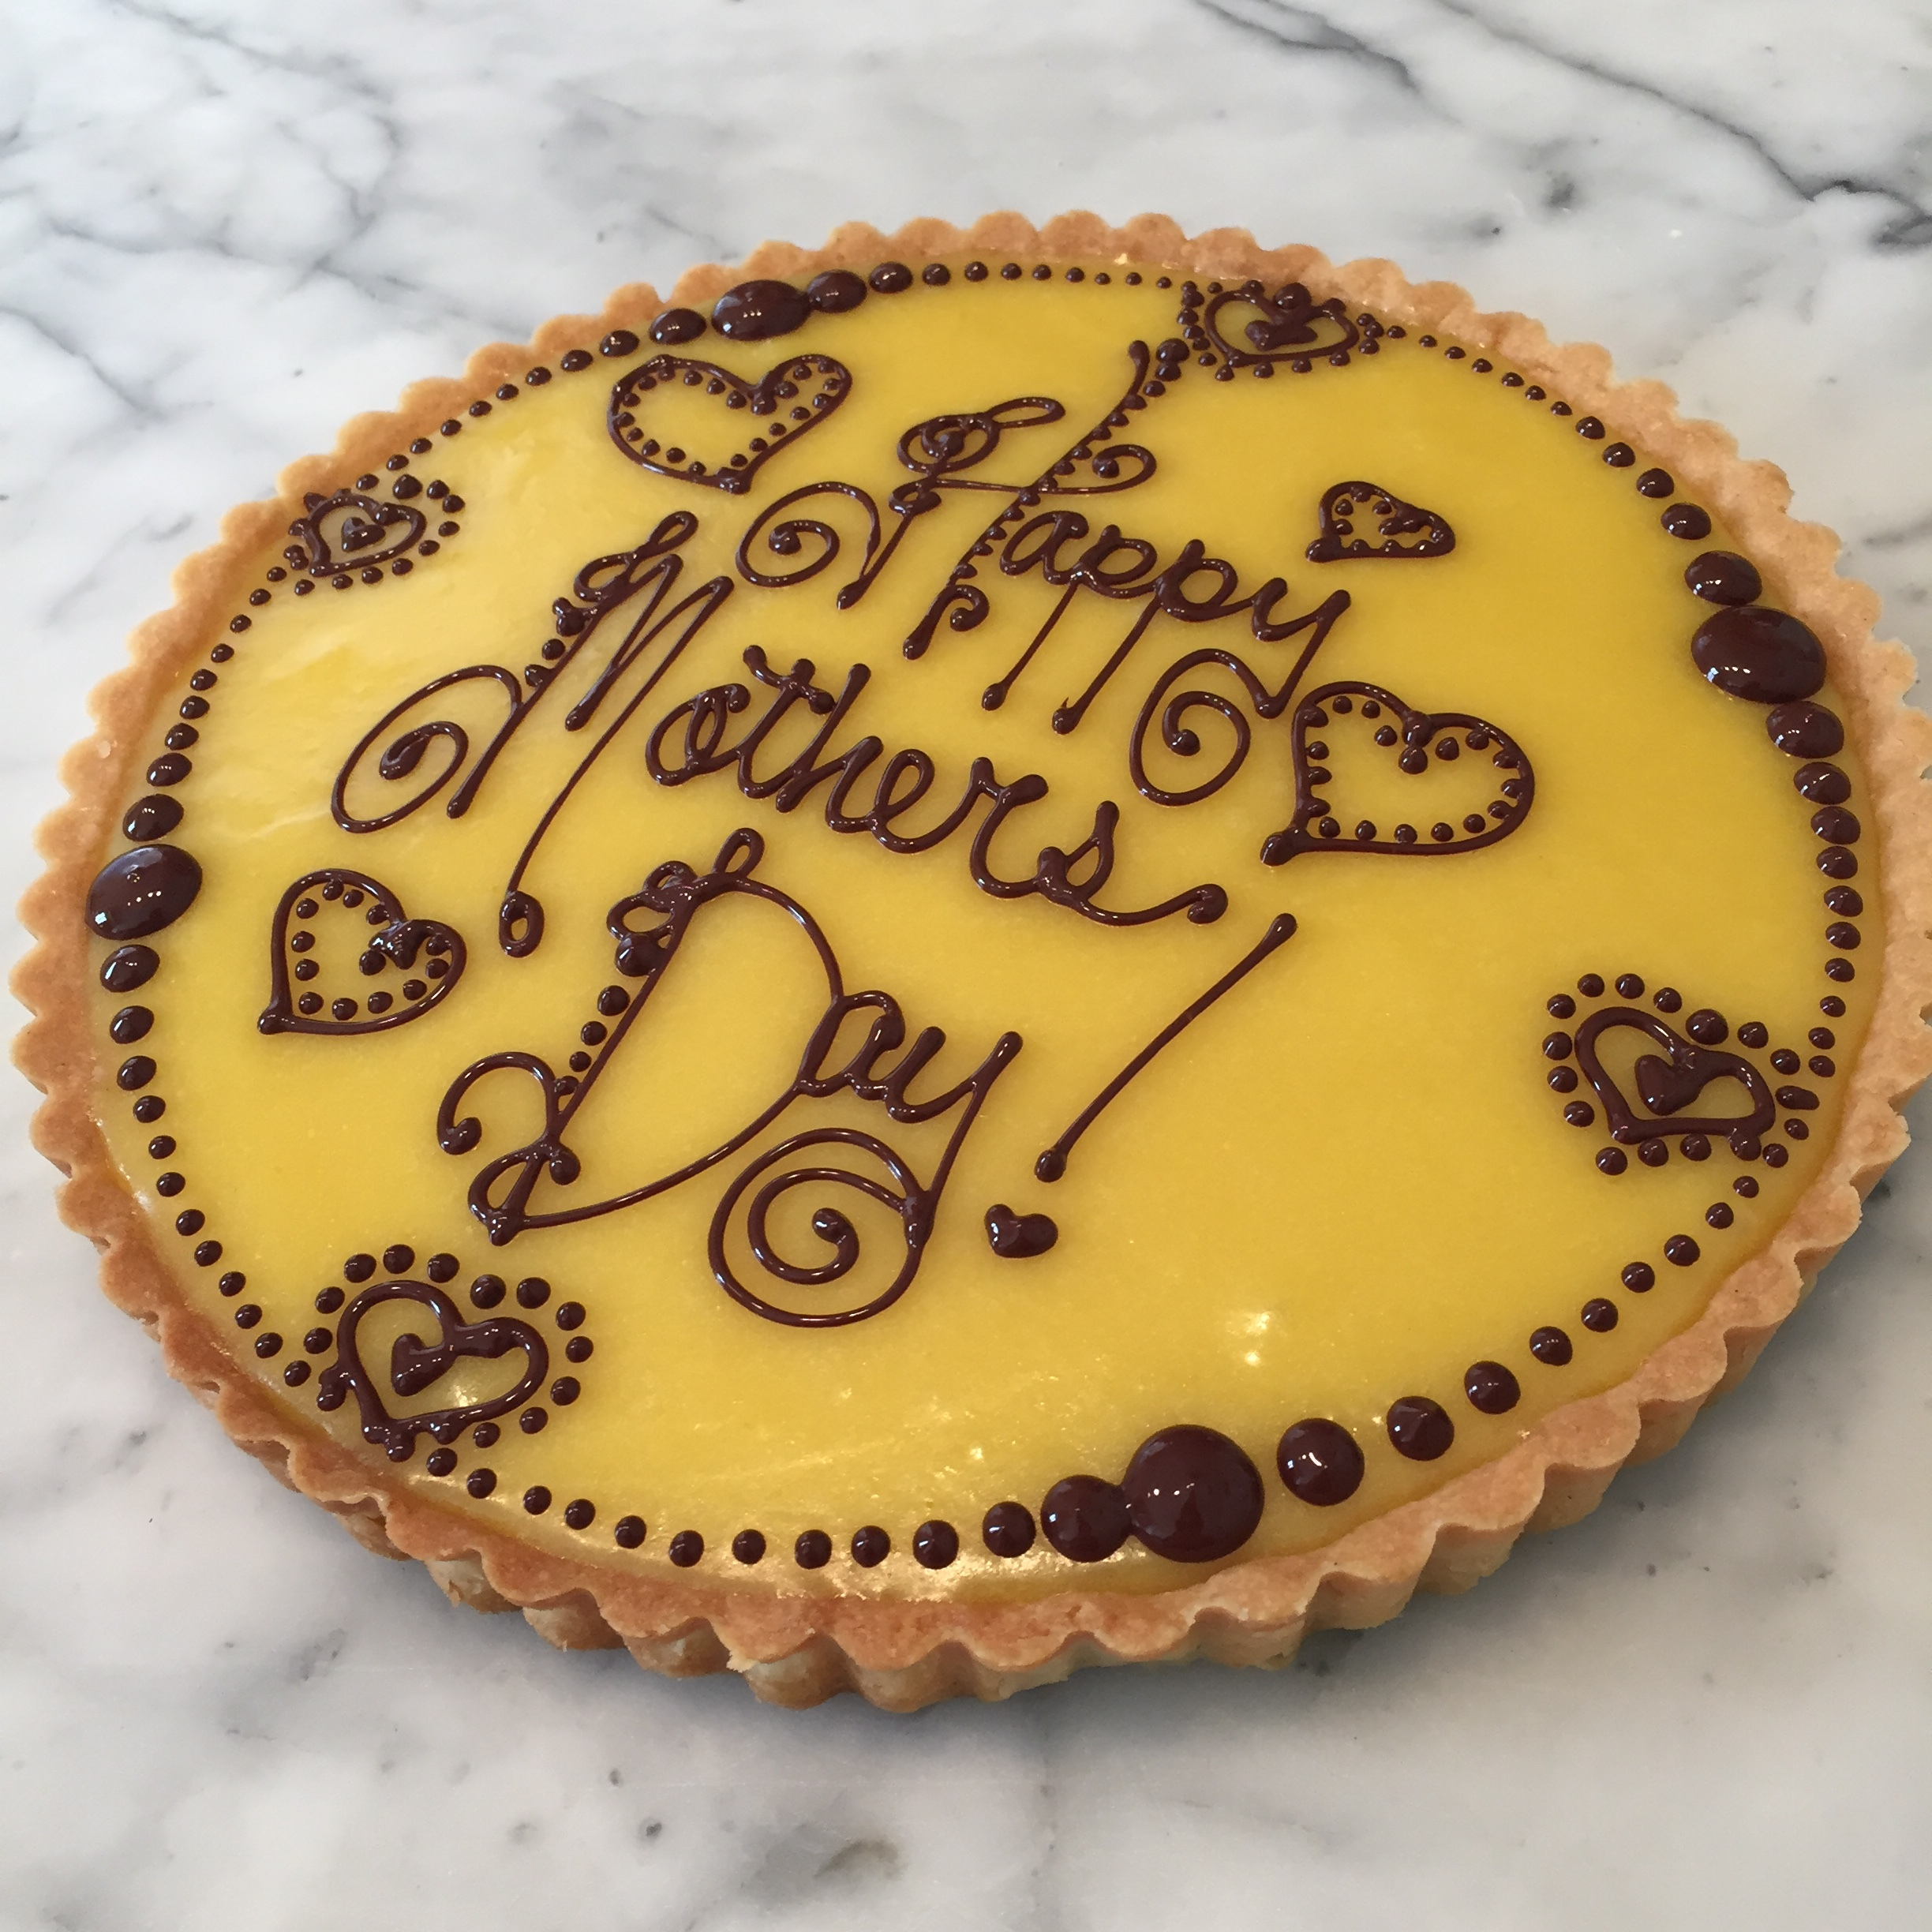 pies_lemon tart.JPG